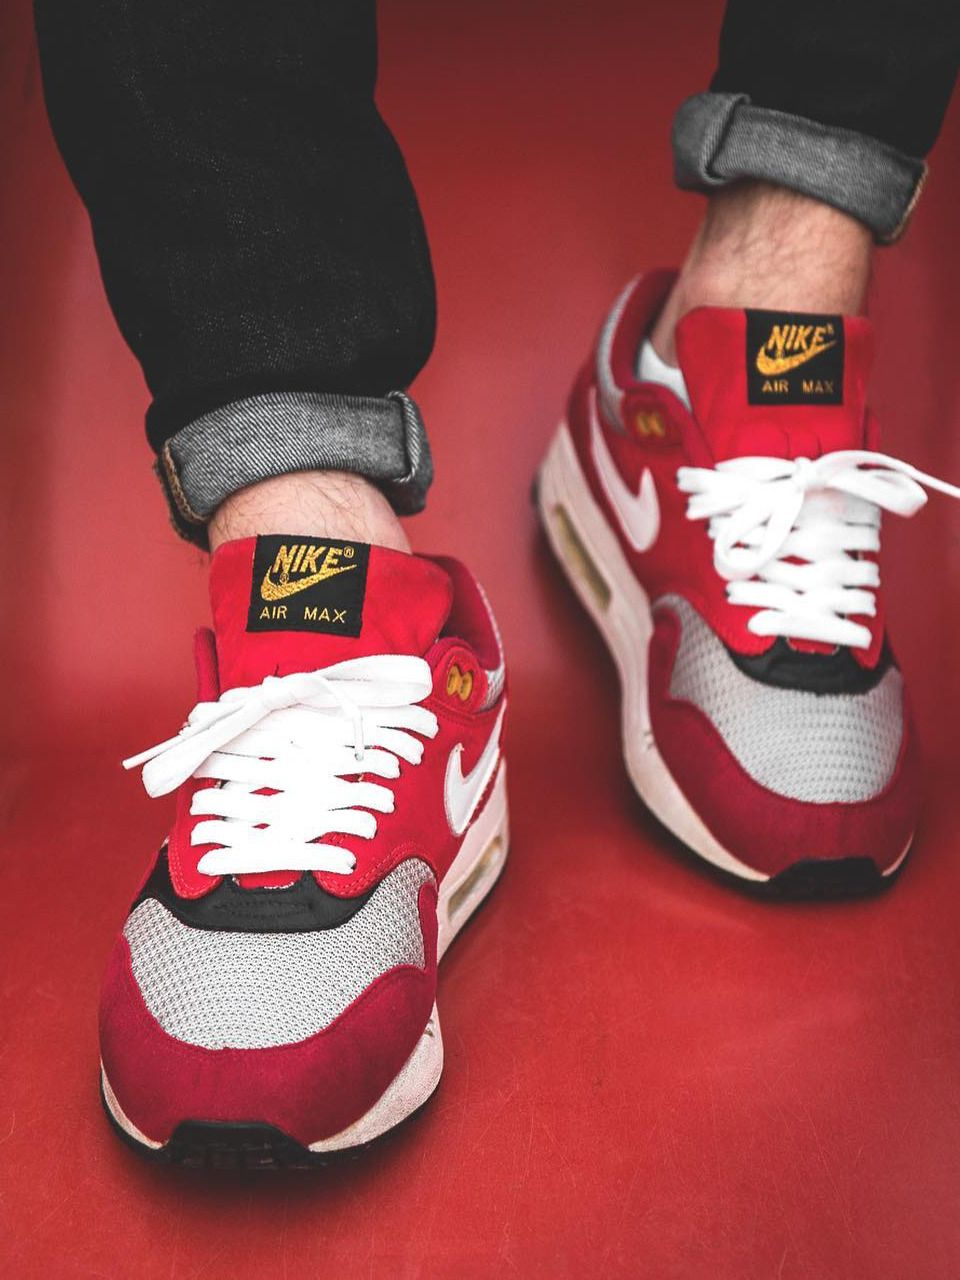 711fc1dfdc Nike Air Max 1 Urawa Dragon - 2004 (by gawmess) | Sneakers in 2019 ...